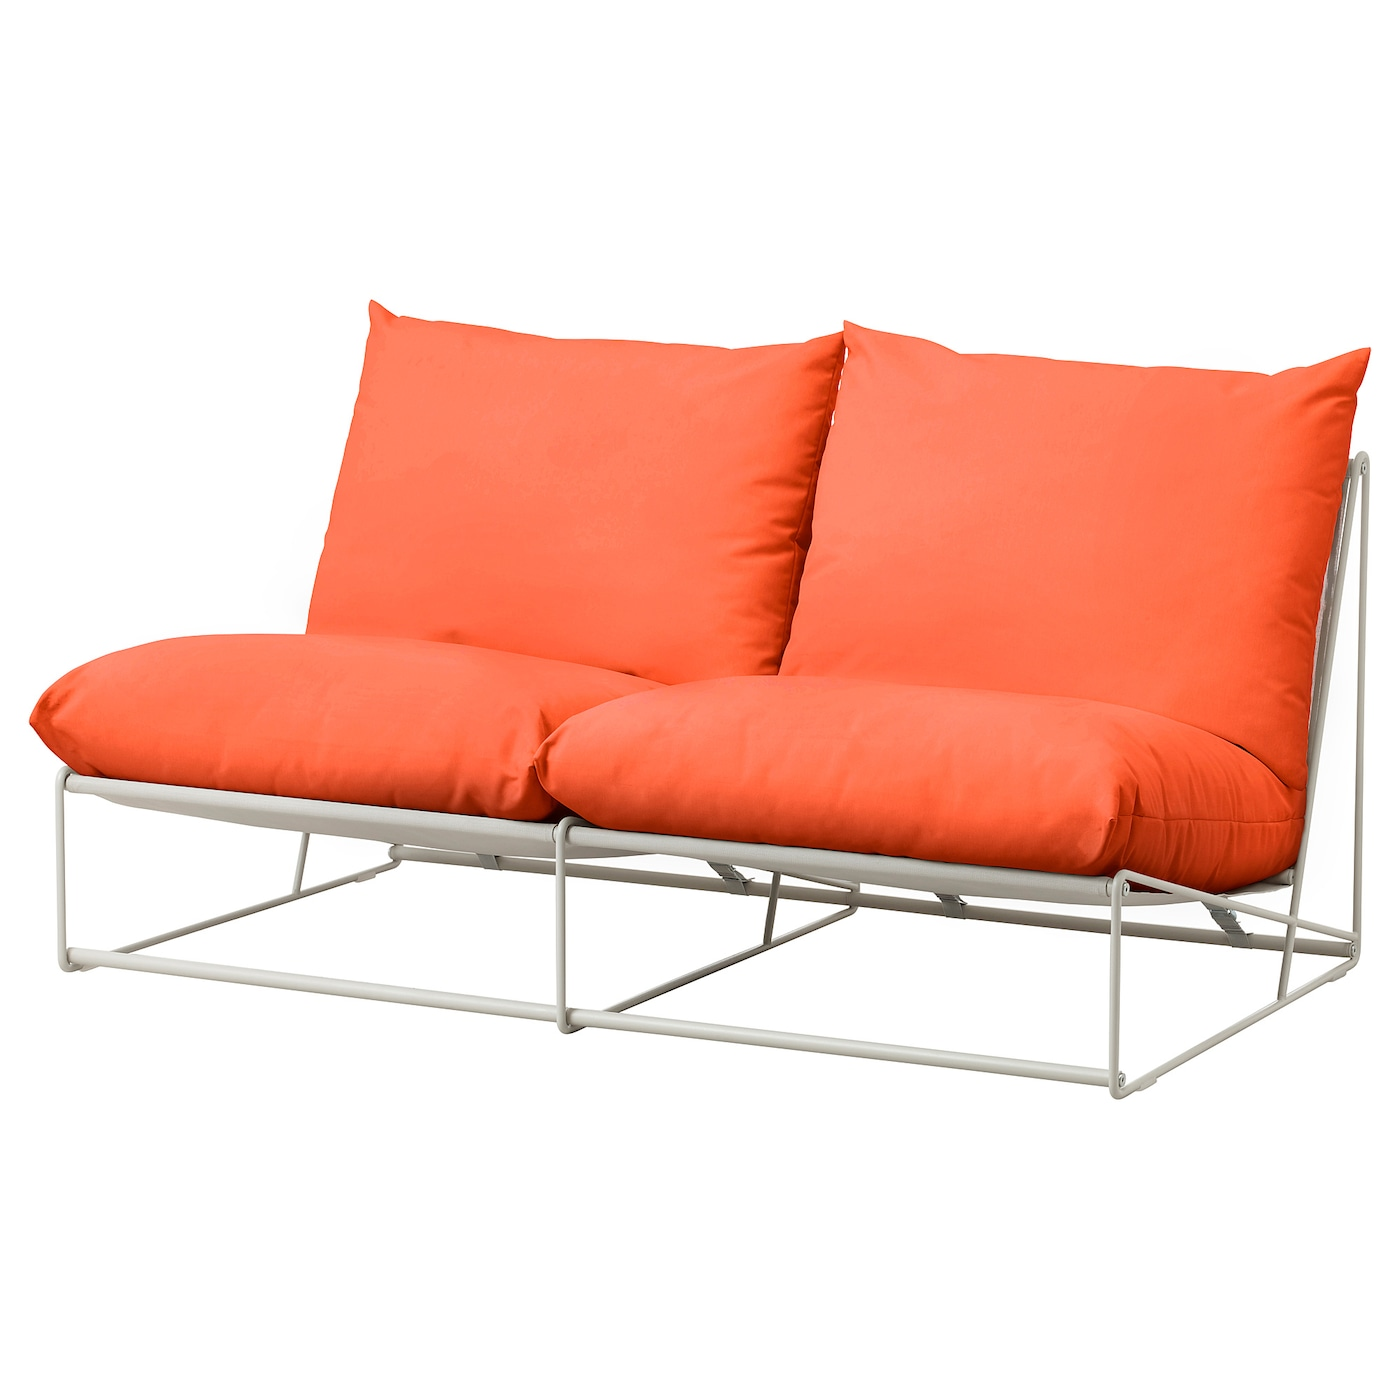 IKEA HAVSTEN 2-seat sofa, in/outdoor